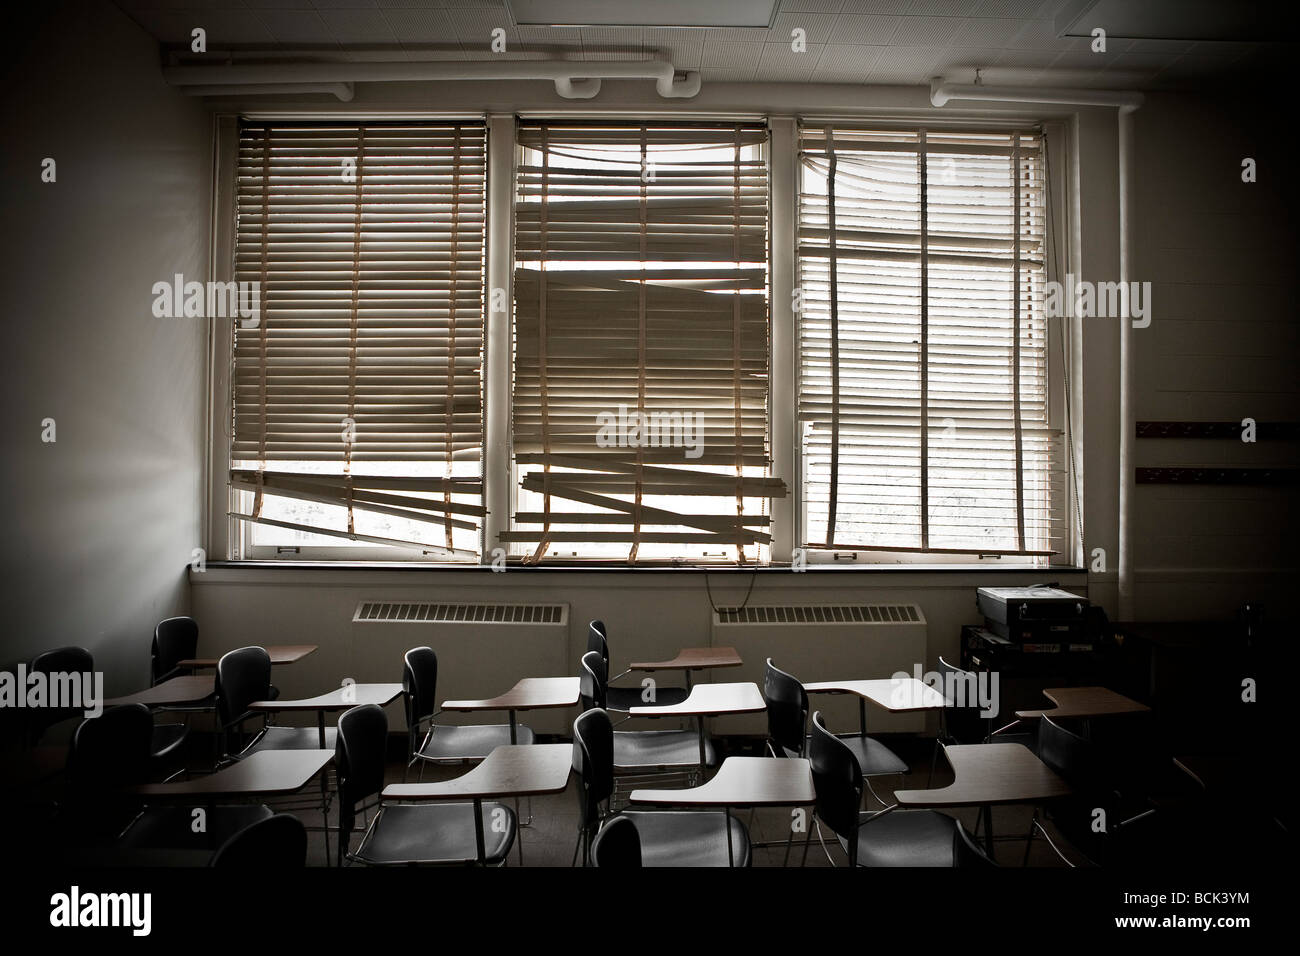 Old classroom with broken window blinds Stock Photo